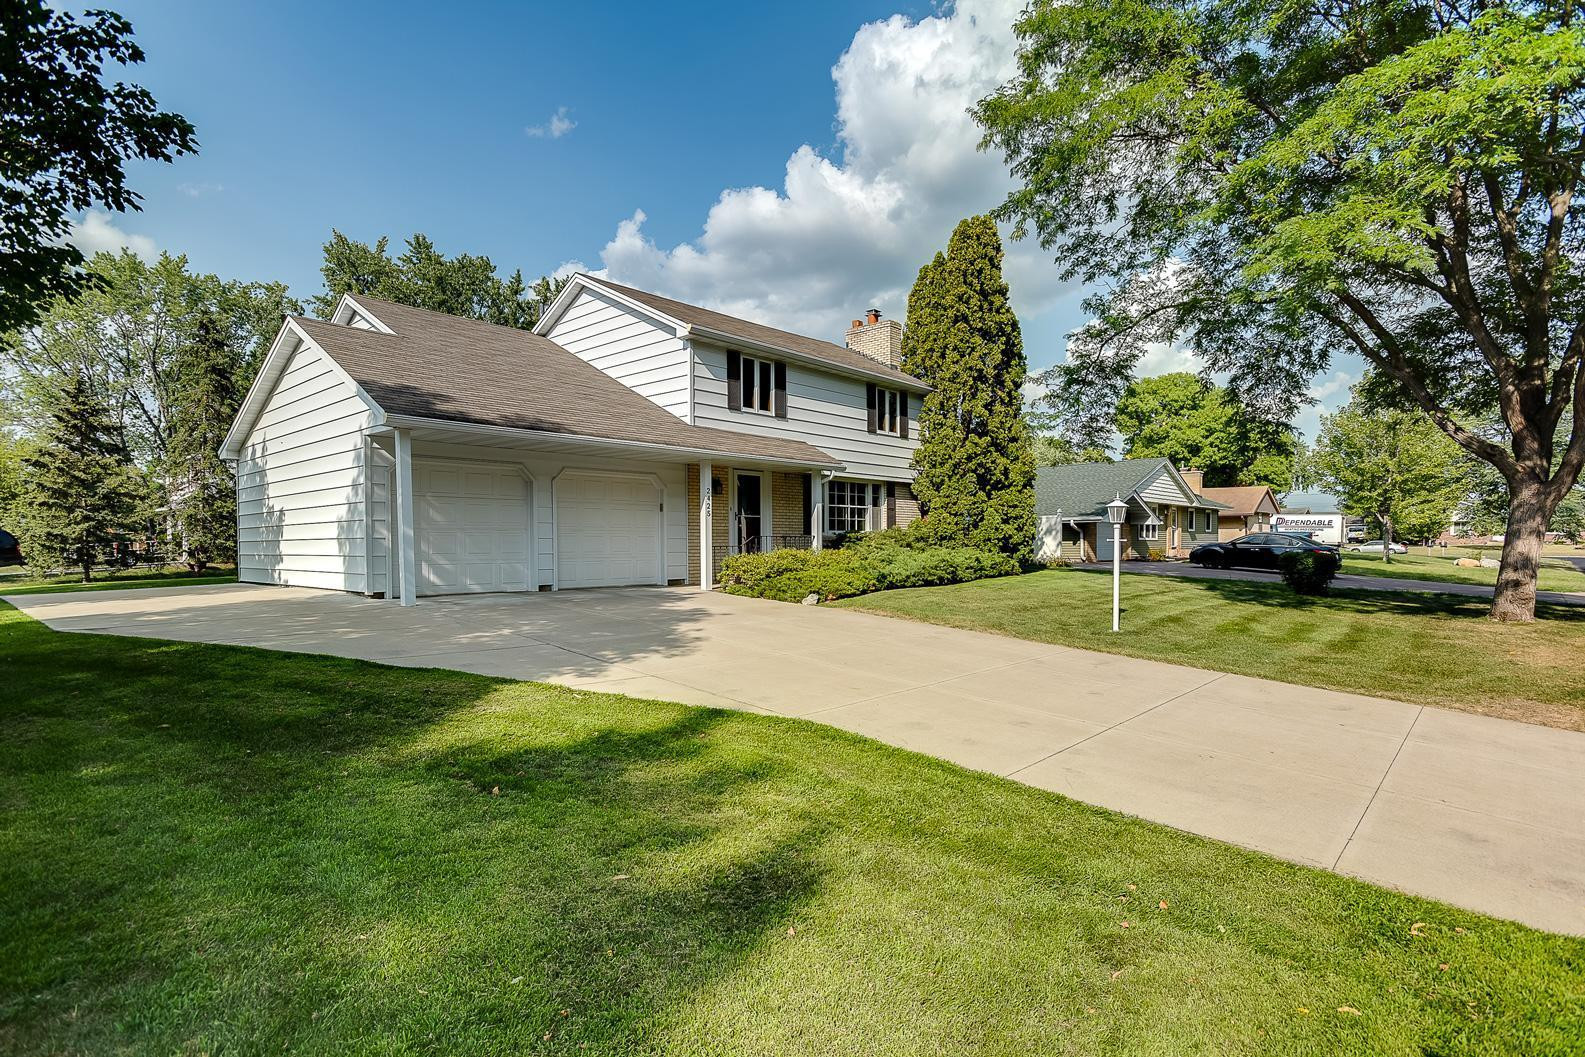 Welcome HOME to 2425 118th Ave NW in Coon Rapids! This turn-key home is ready for YOU!